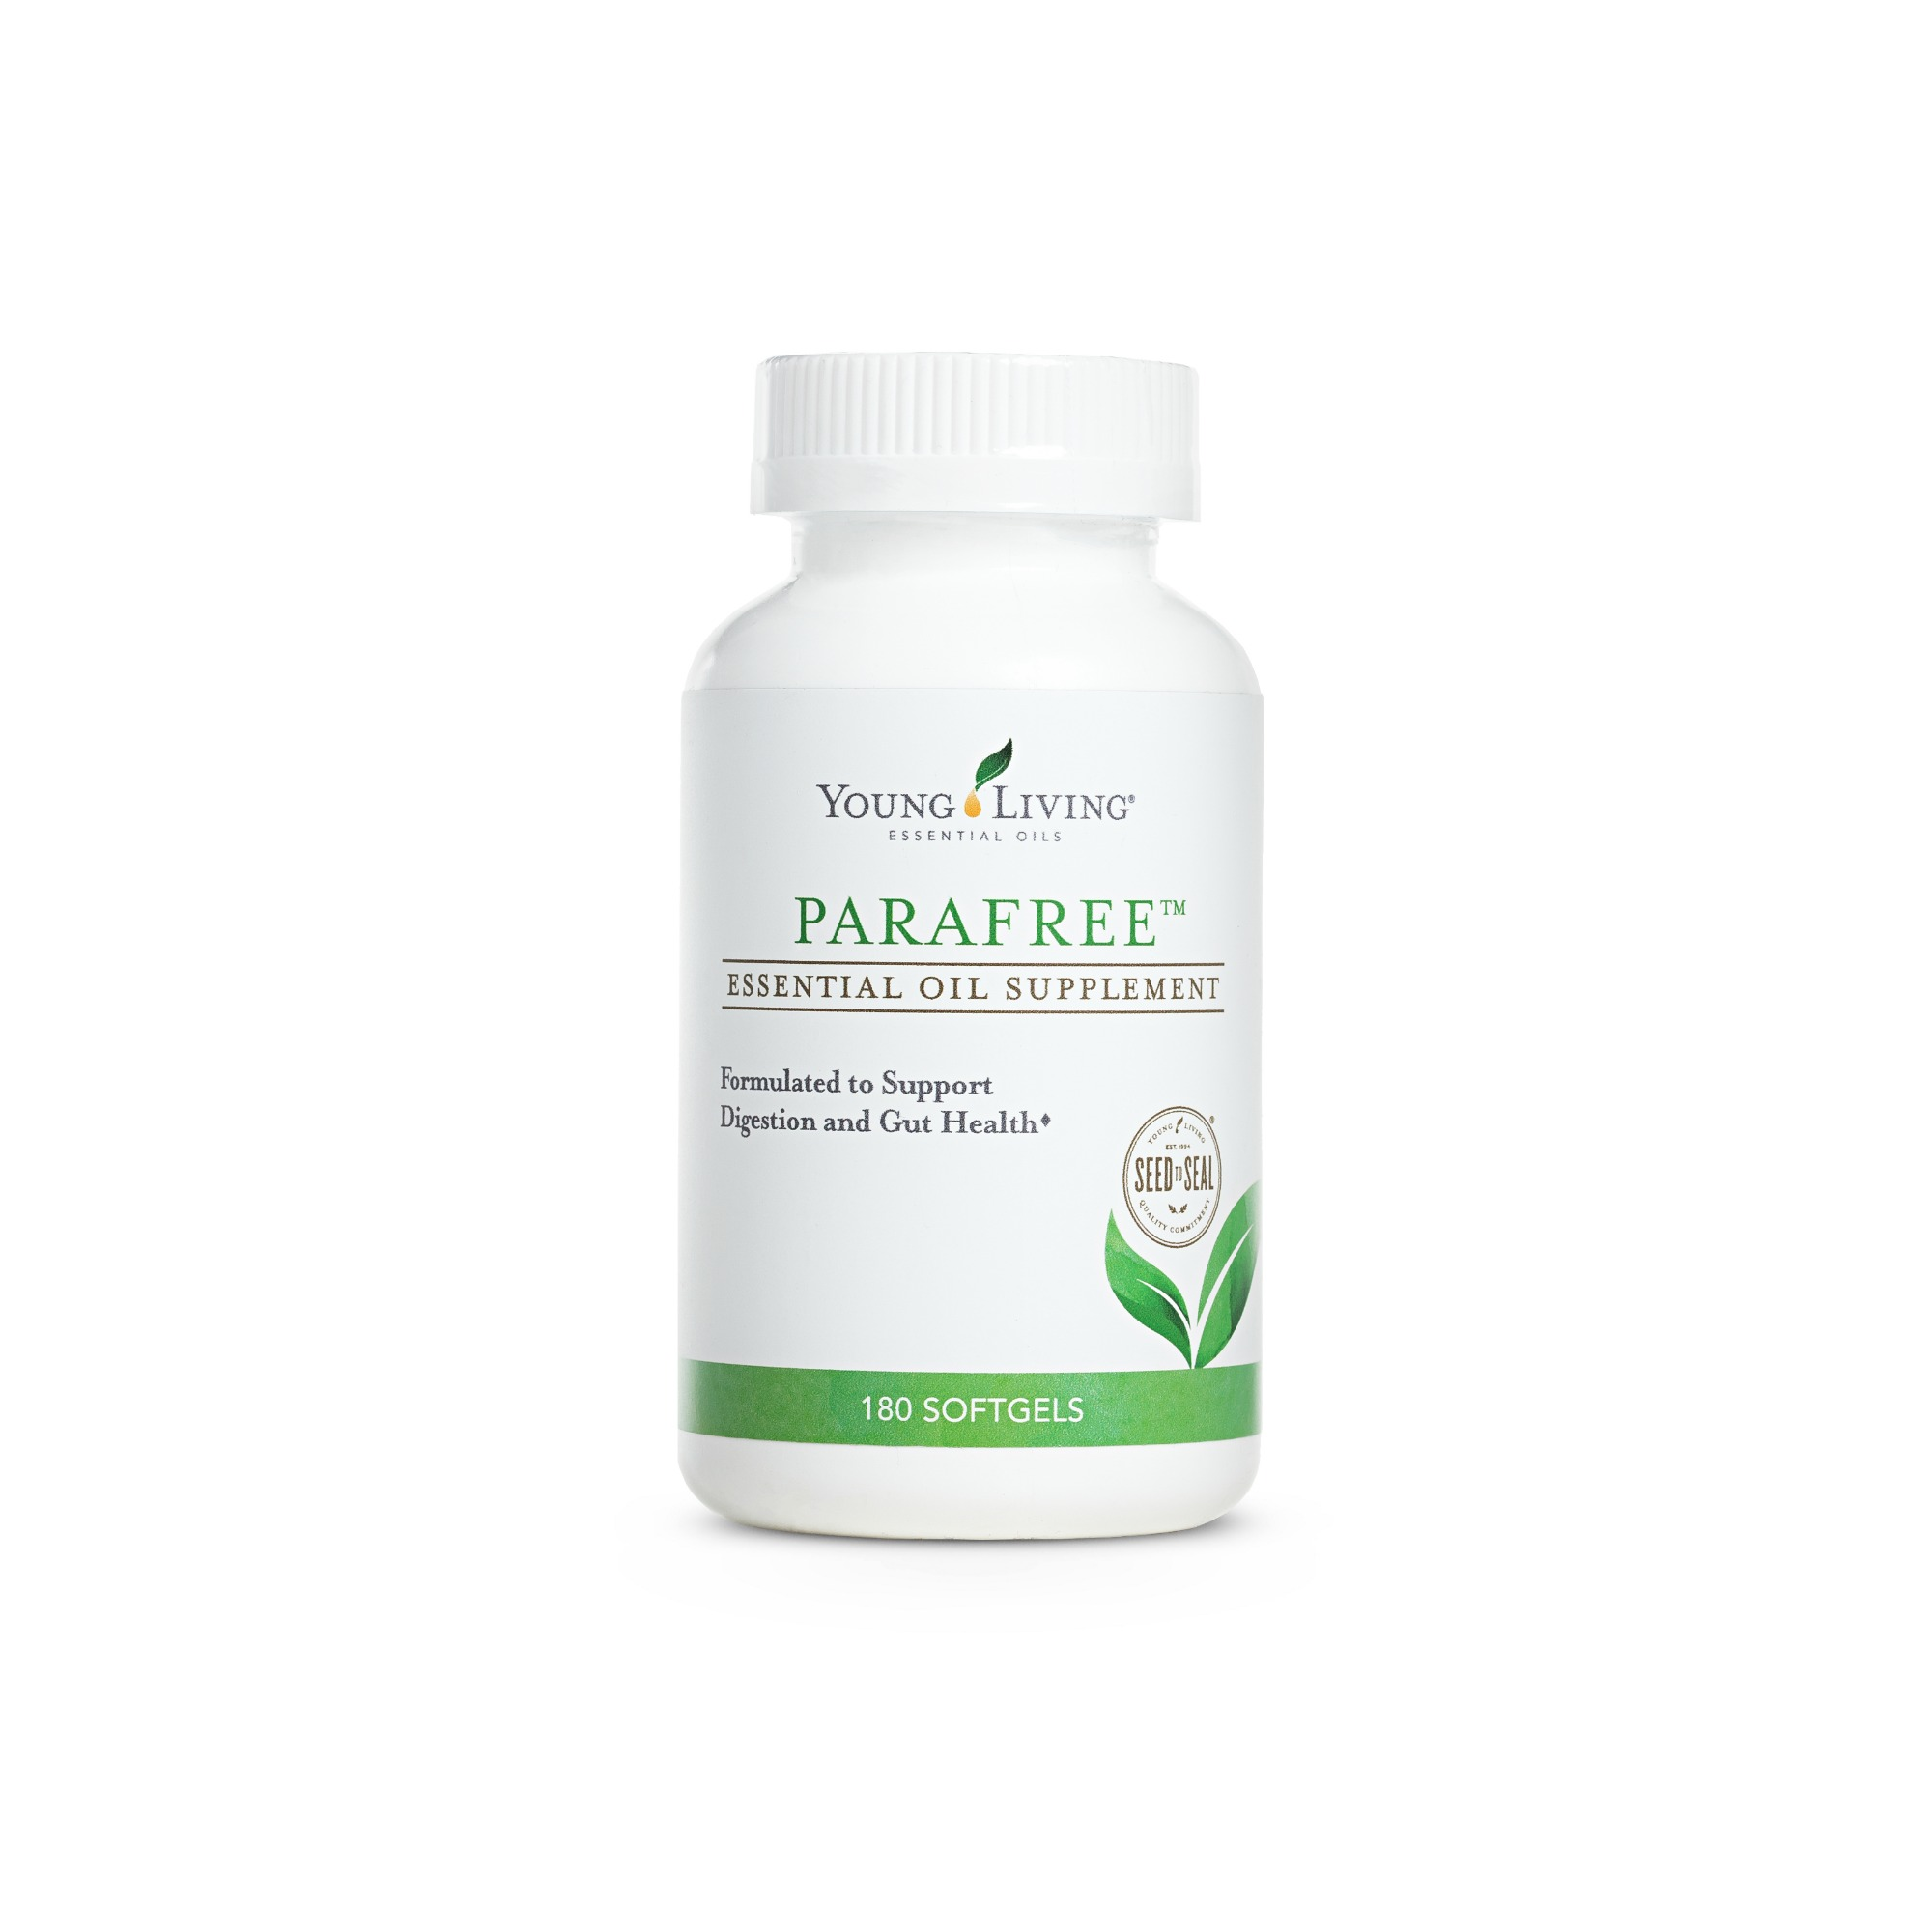 PARAFREE    ParaFree is formulated with an advanced blend of some of the strongest essential oils studied for their cleansing abilities. This formula also includes the added benefits of sesame seed oil and olive oil. It is very popular for intestinal cleansing, supports a healthy digestive system, and healthy detoxification. It's known to keep the digestive system in working order and for optimal gut health.   Click here   to learn more about this product.